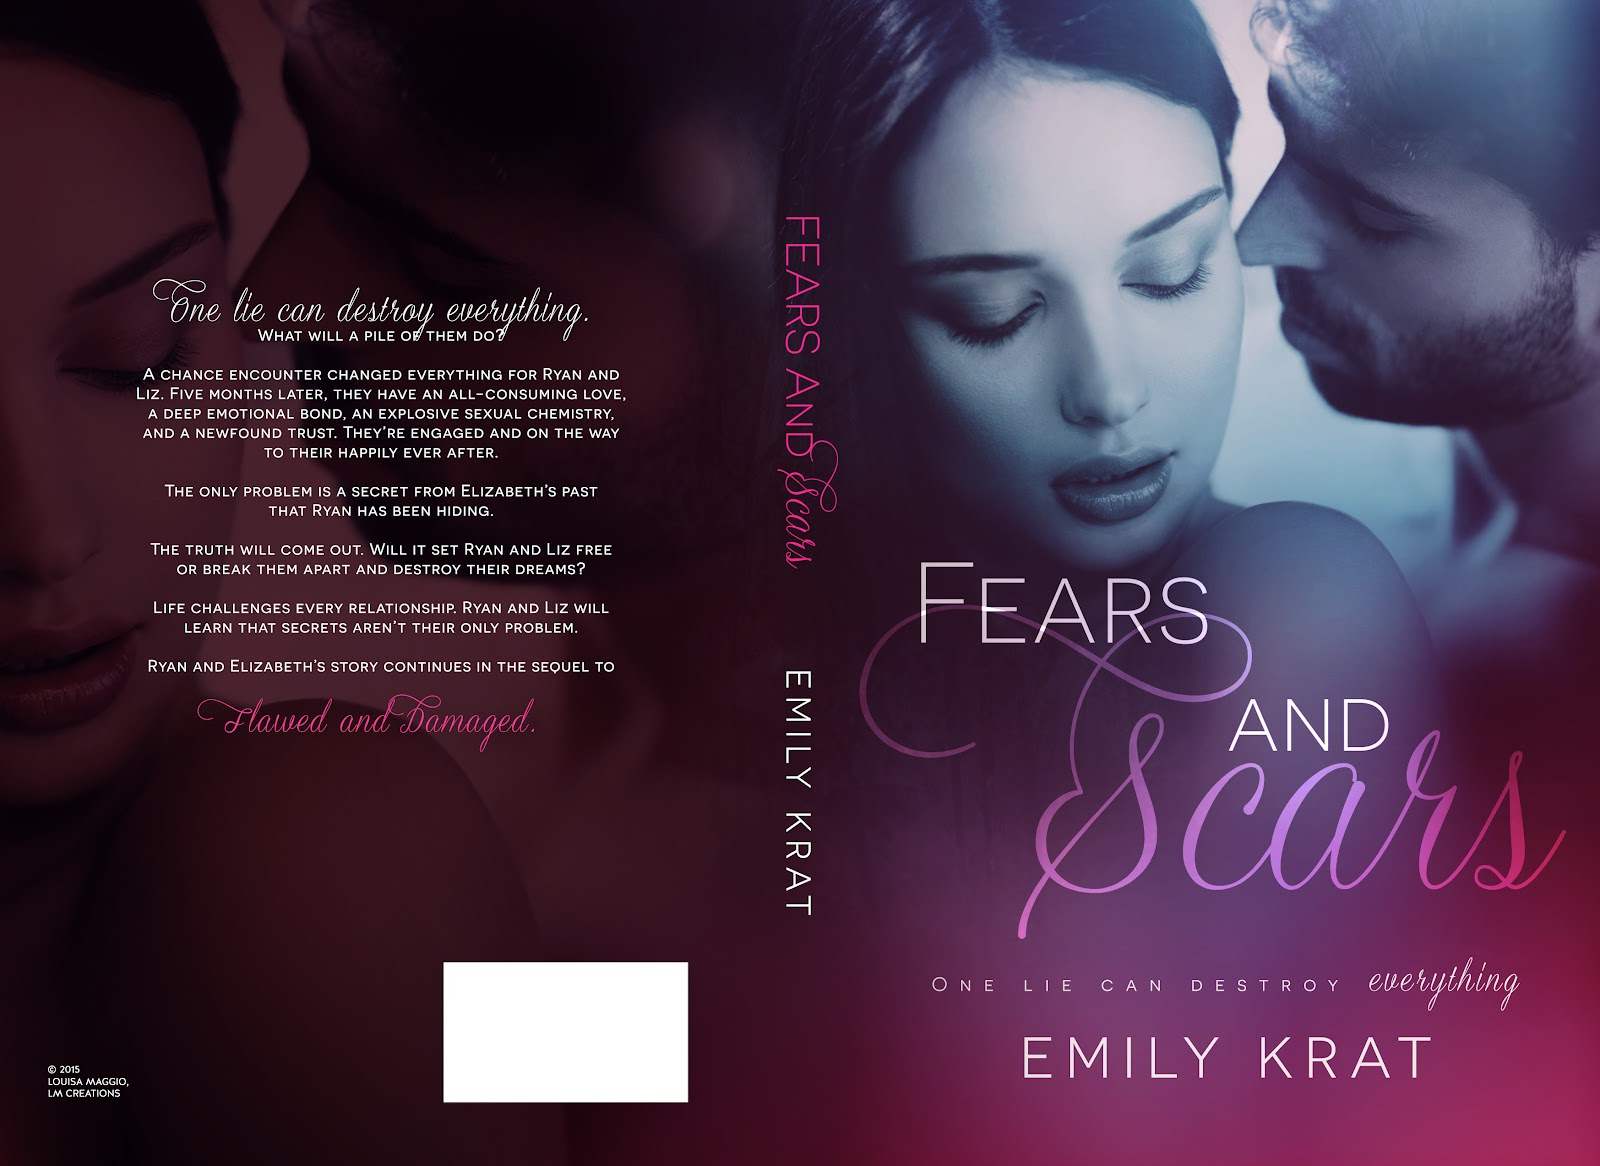 FEARS AND SCARS BY EMILY KRAT FULL JACKET FOR SHARING.jpg